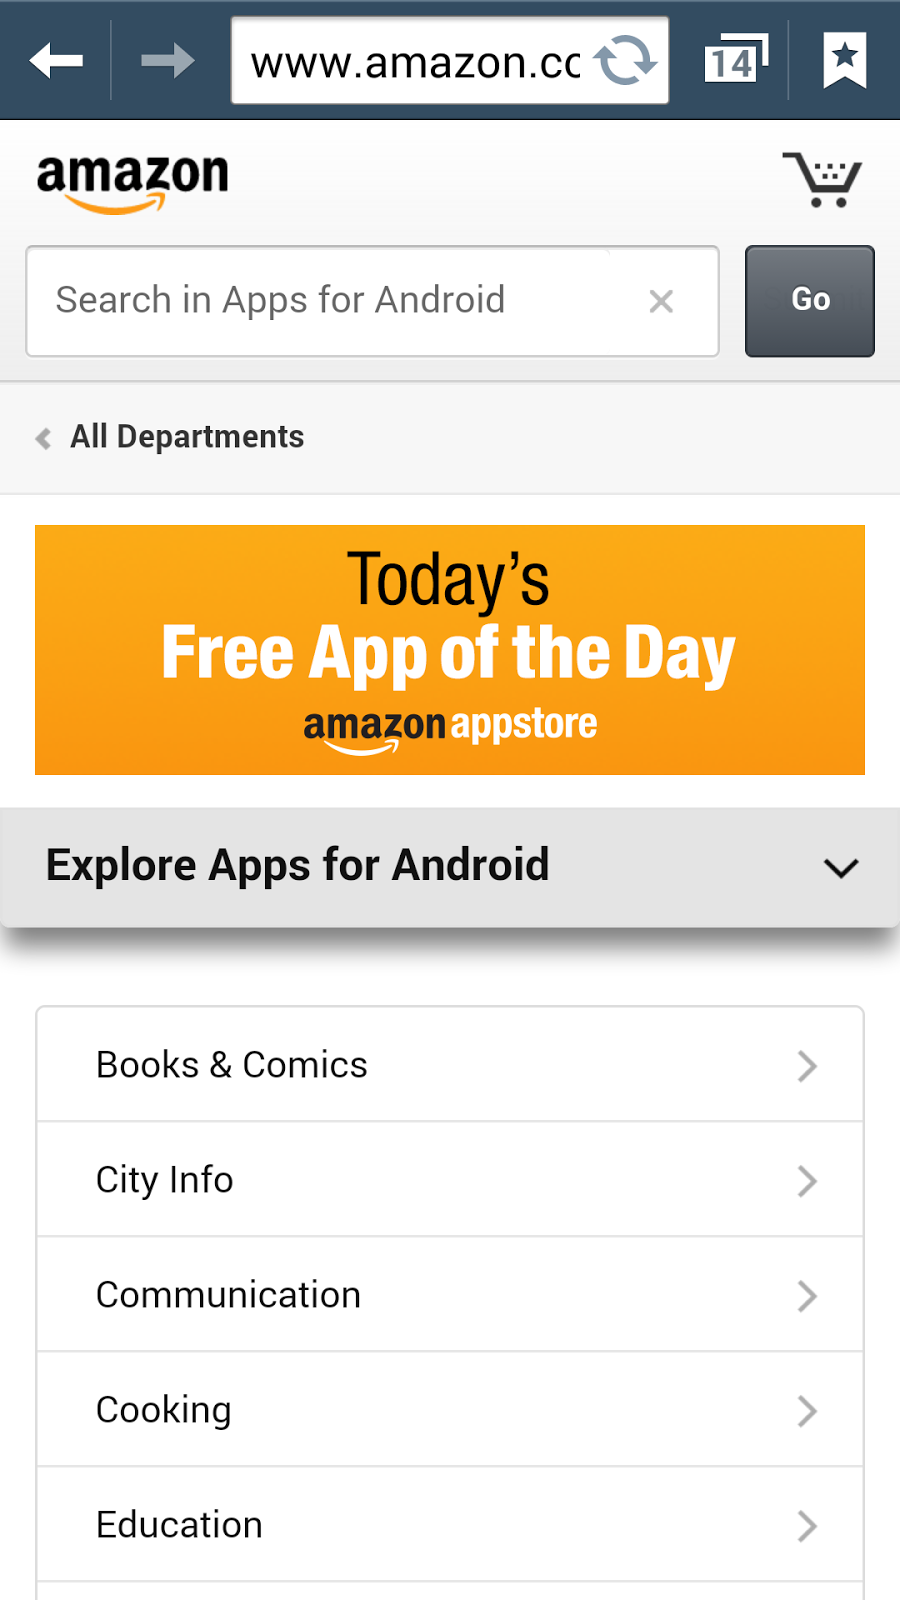 Amazon giving paid Apps of $100 (Rs.6000) FREE through its App Store as part of Free App of the Day Program